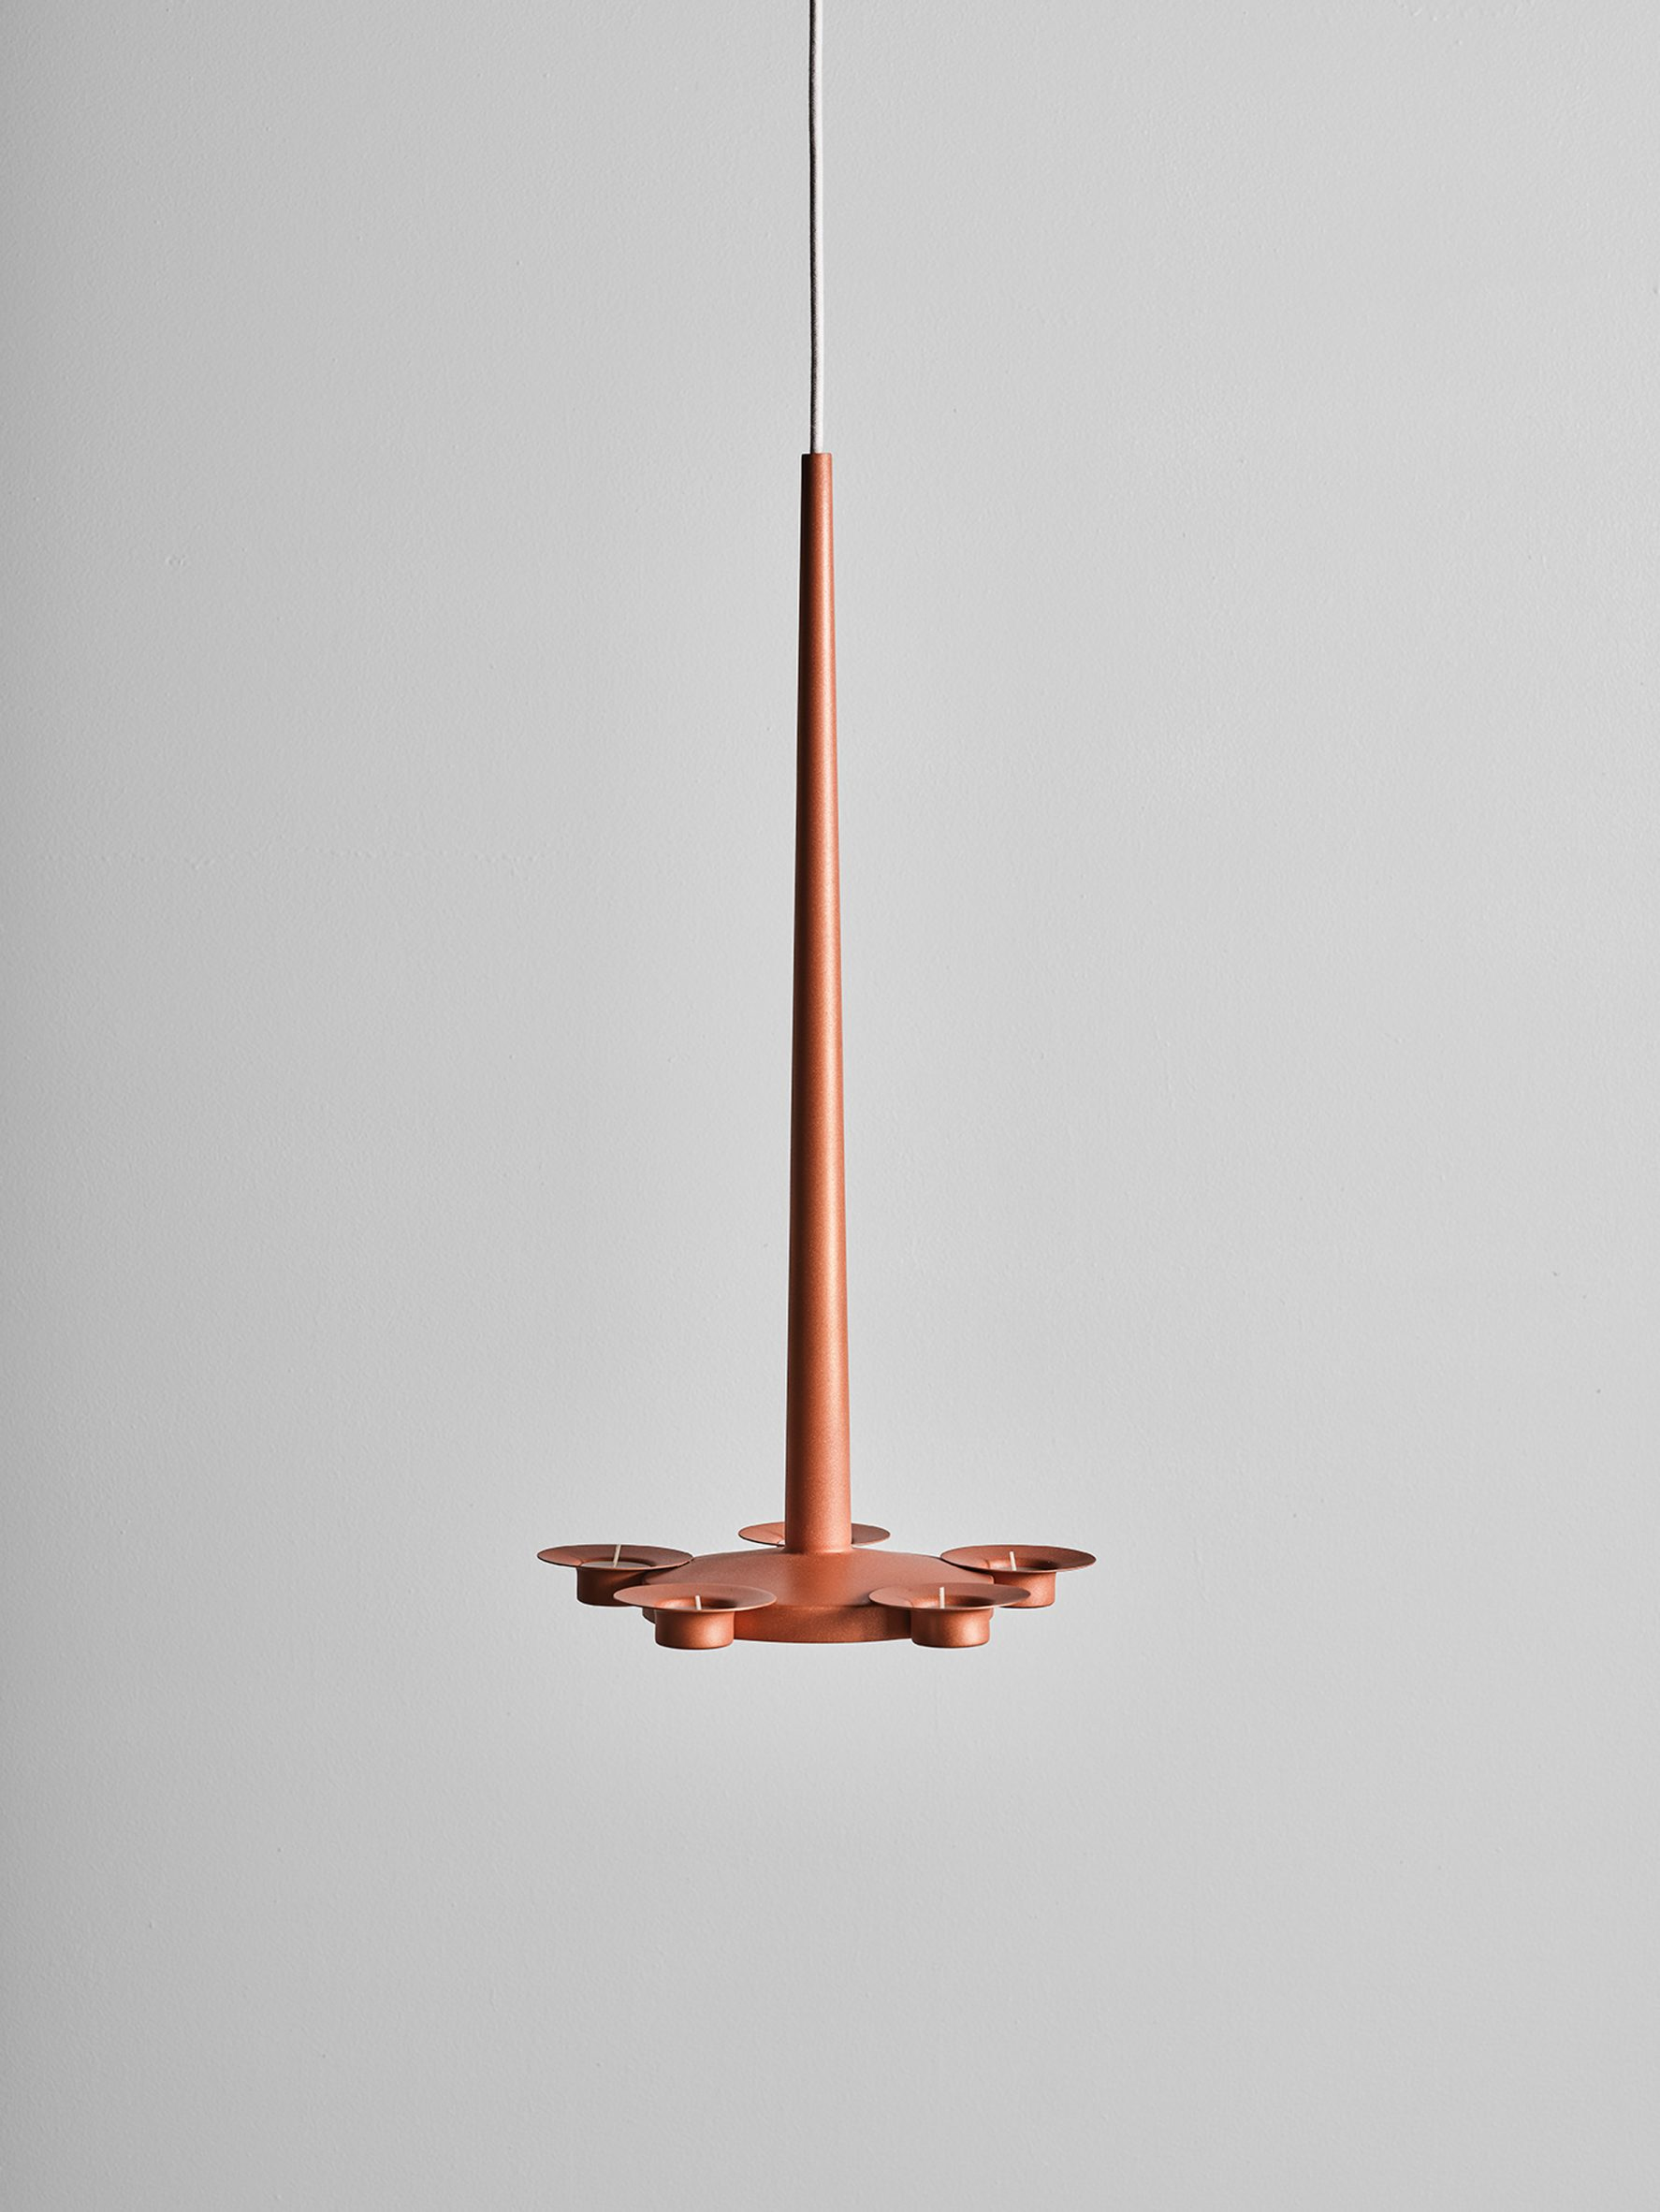 Marcel Wanders studio Cu-Cou light for A Flame for Research